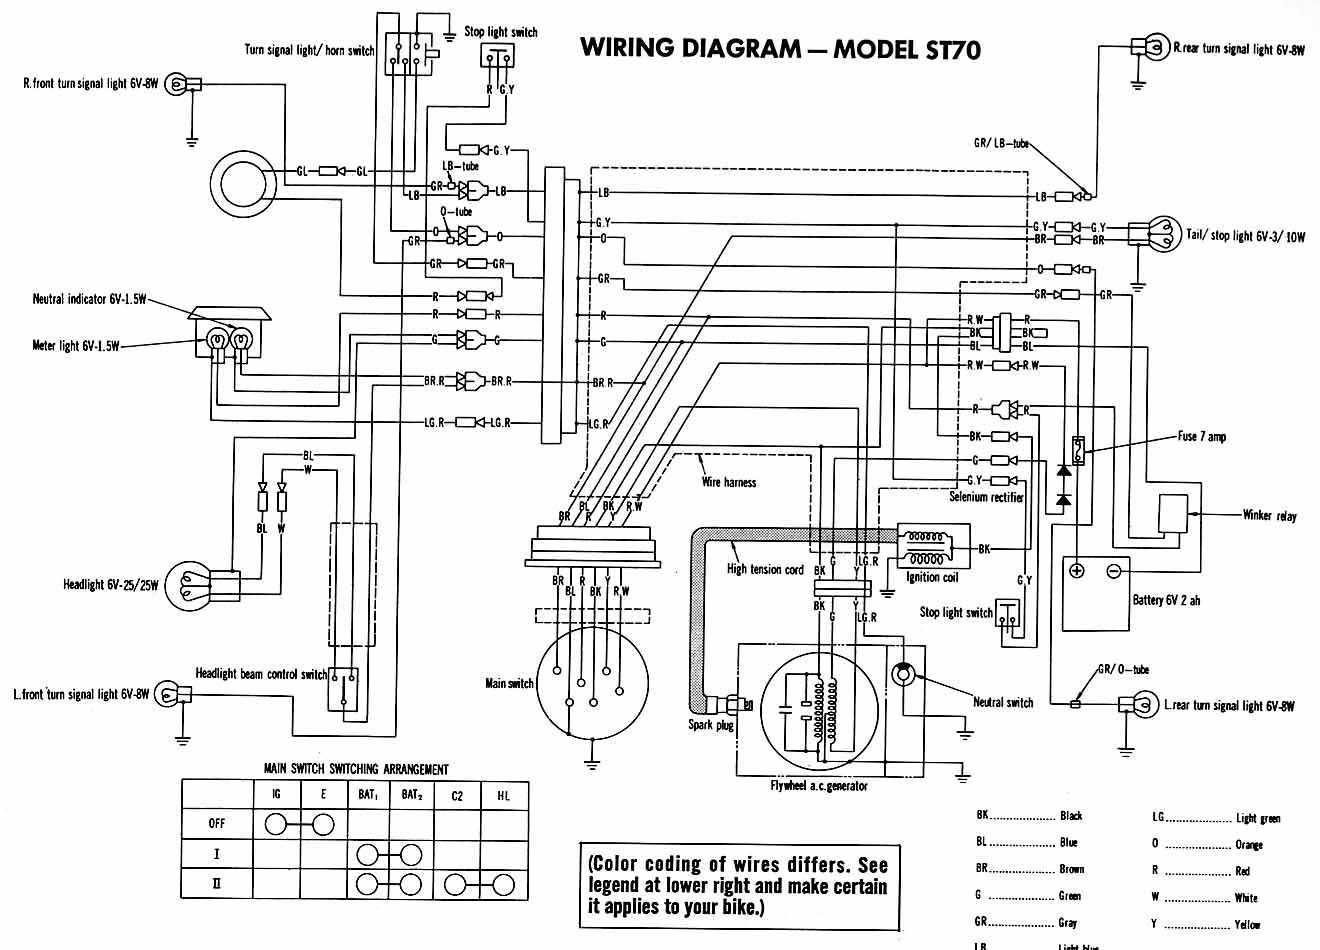 Honda ST70 Motorcycle Wiring Diagram | All about Wiring